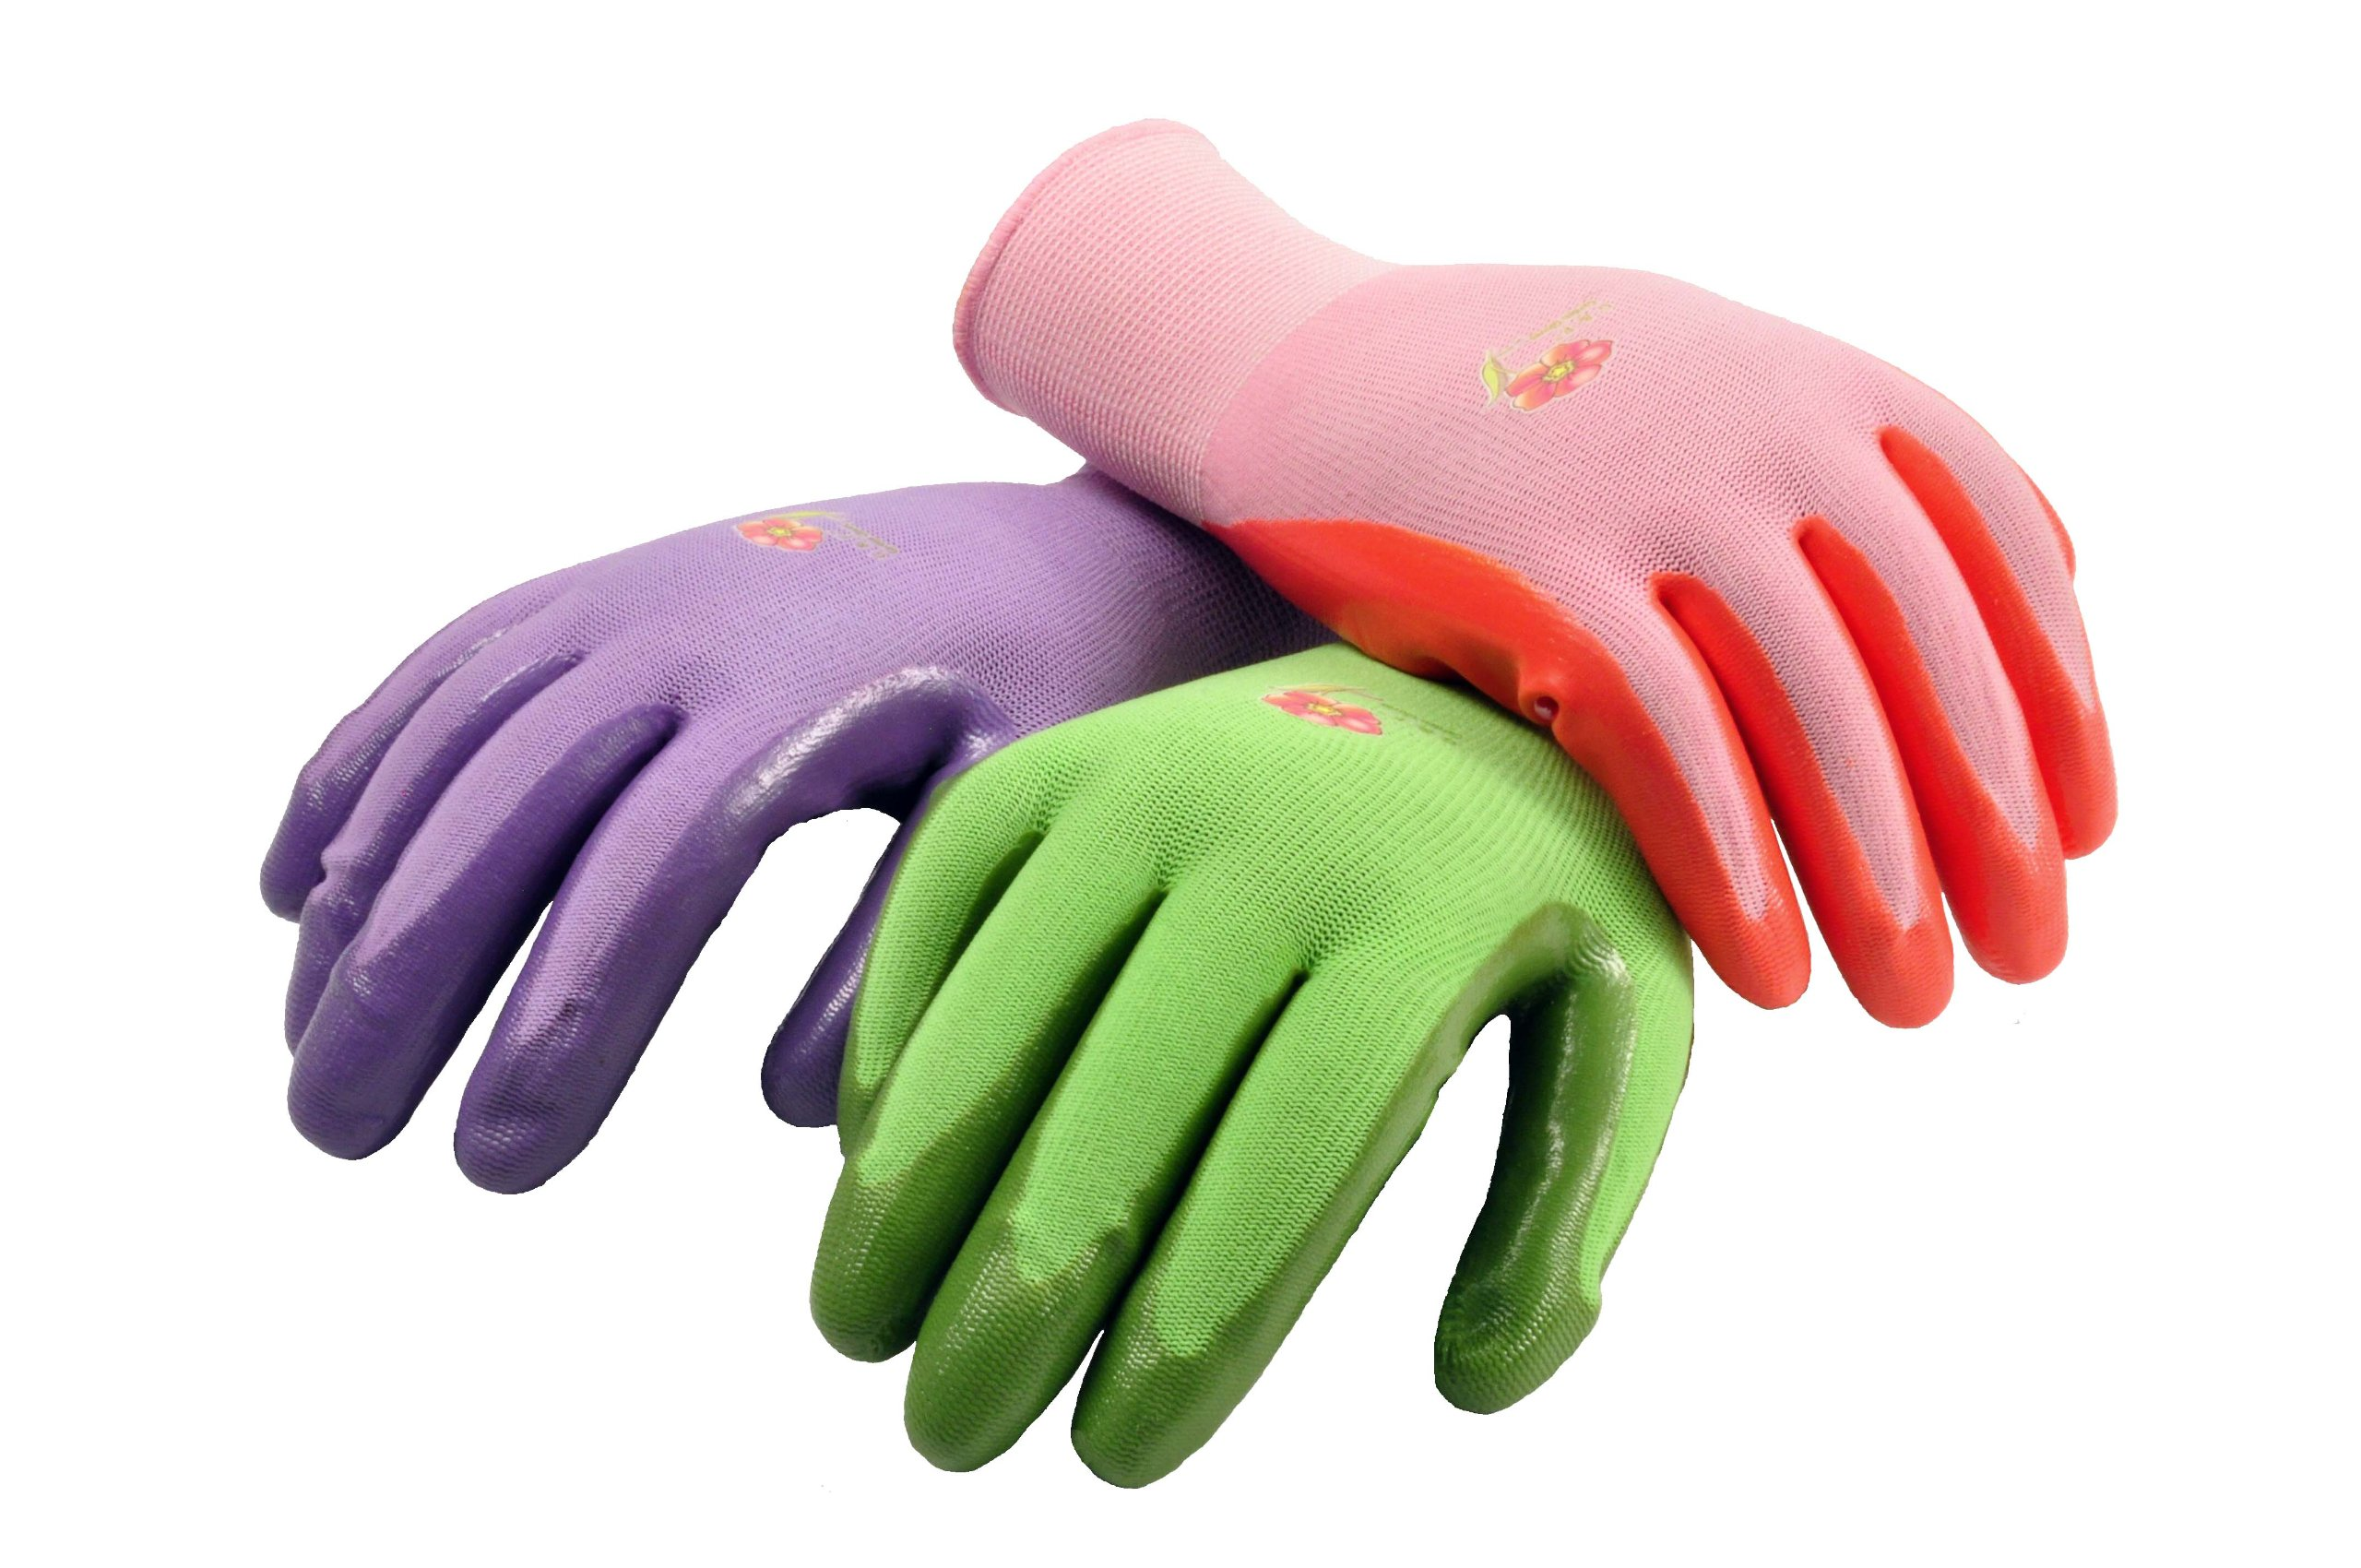 G & F 15226M Women's Garden Gloves, nitrile coated work gloves, assorted colors. Women's Medium, 6 Pair Pack by G & F Products